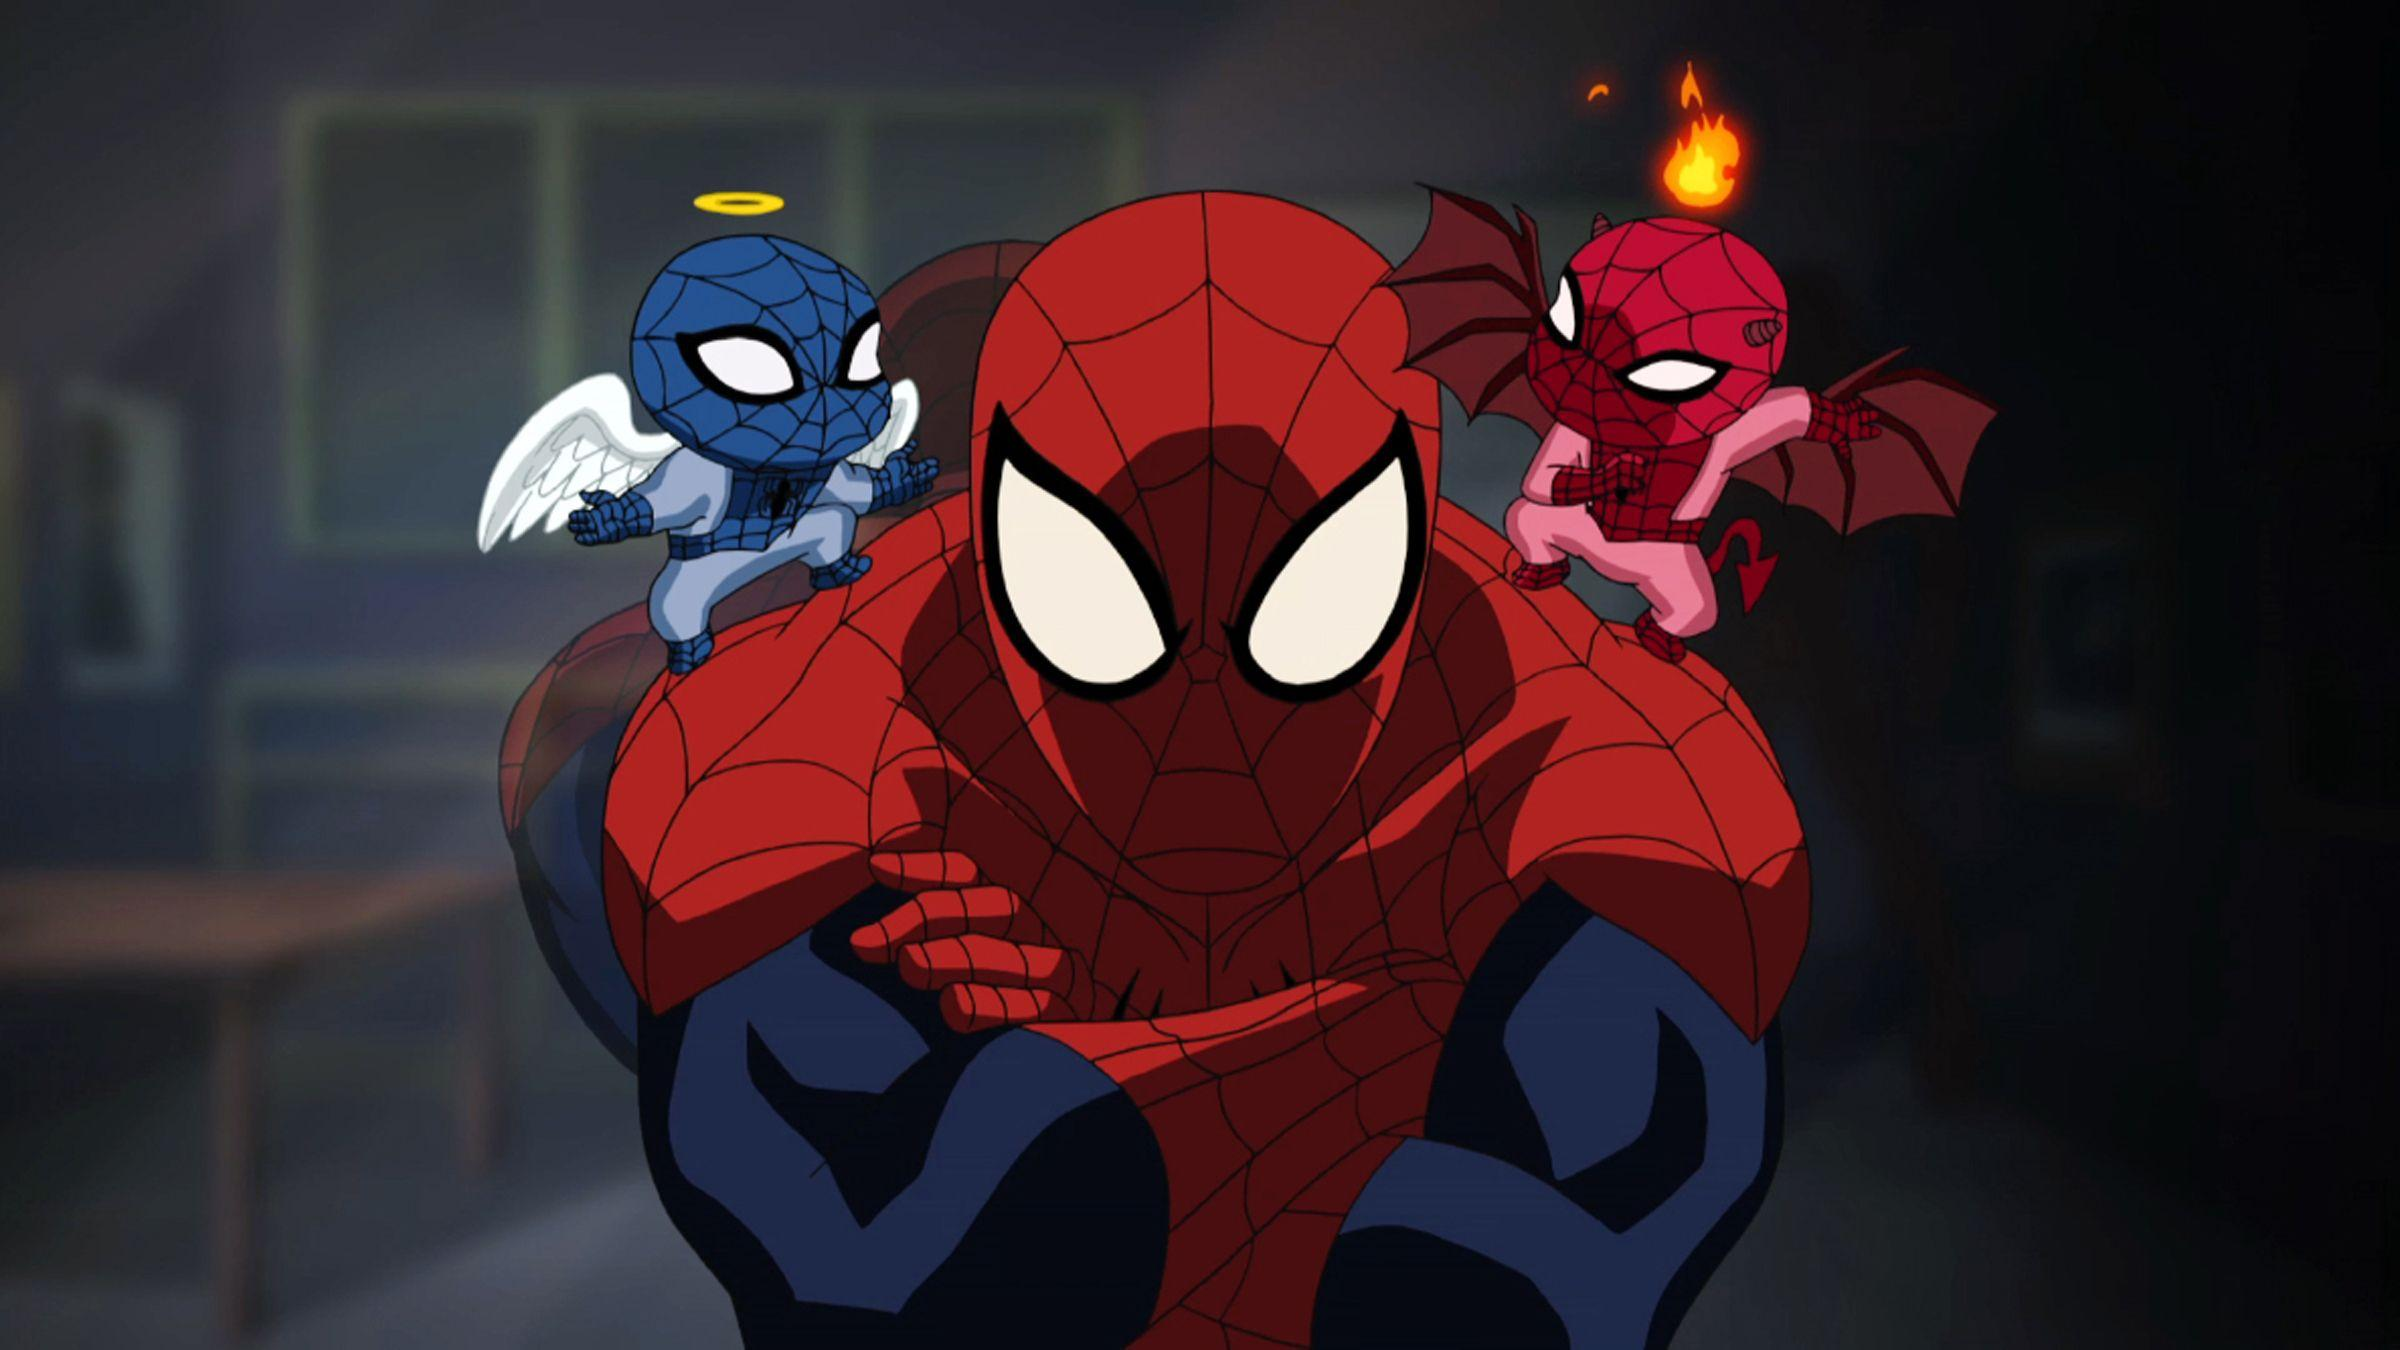 2400x1350px Ultimate Spider Man 965.7 KB #354281